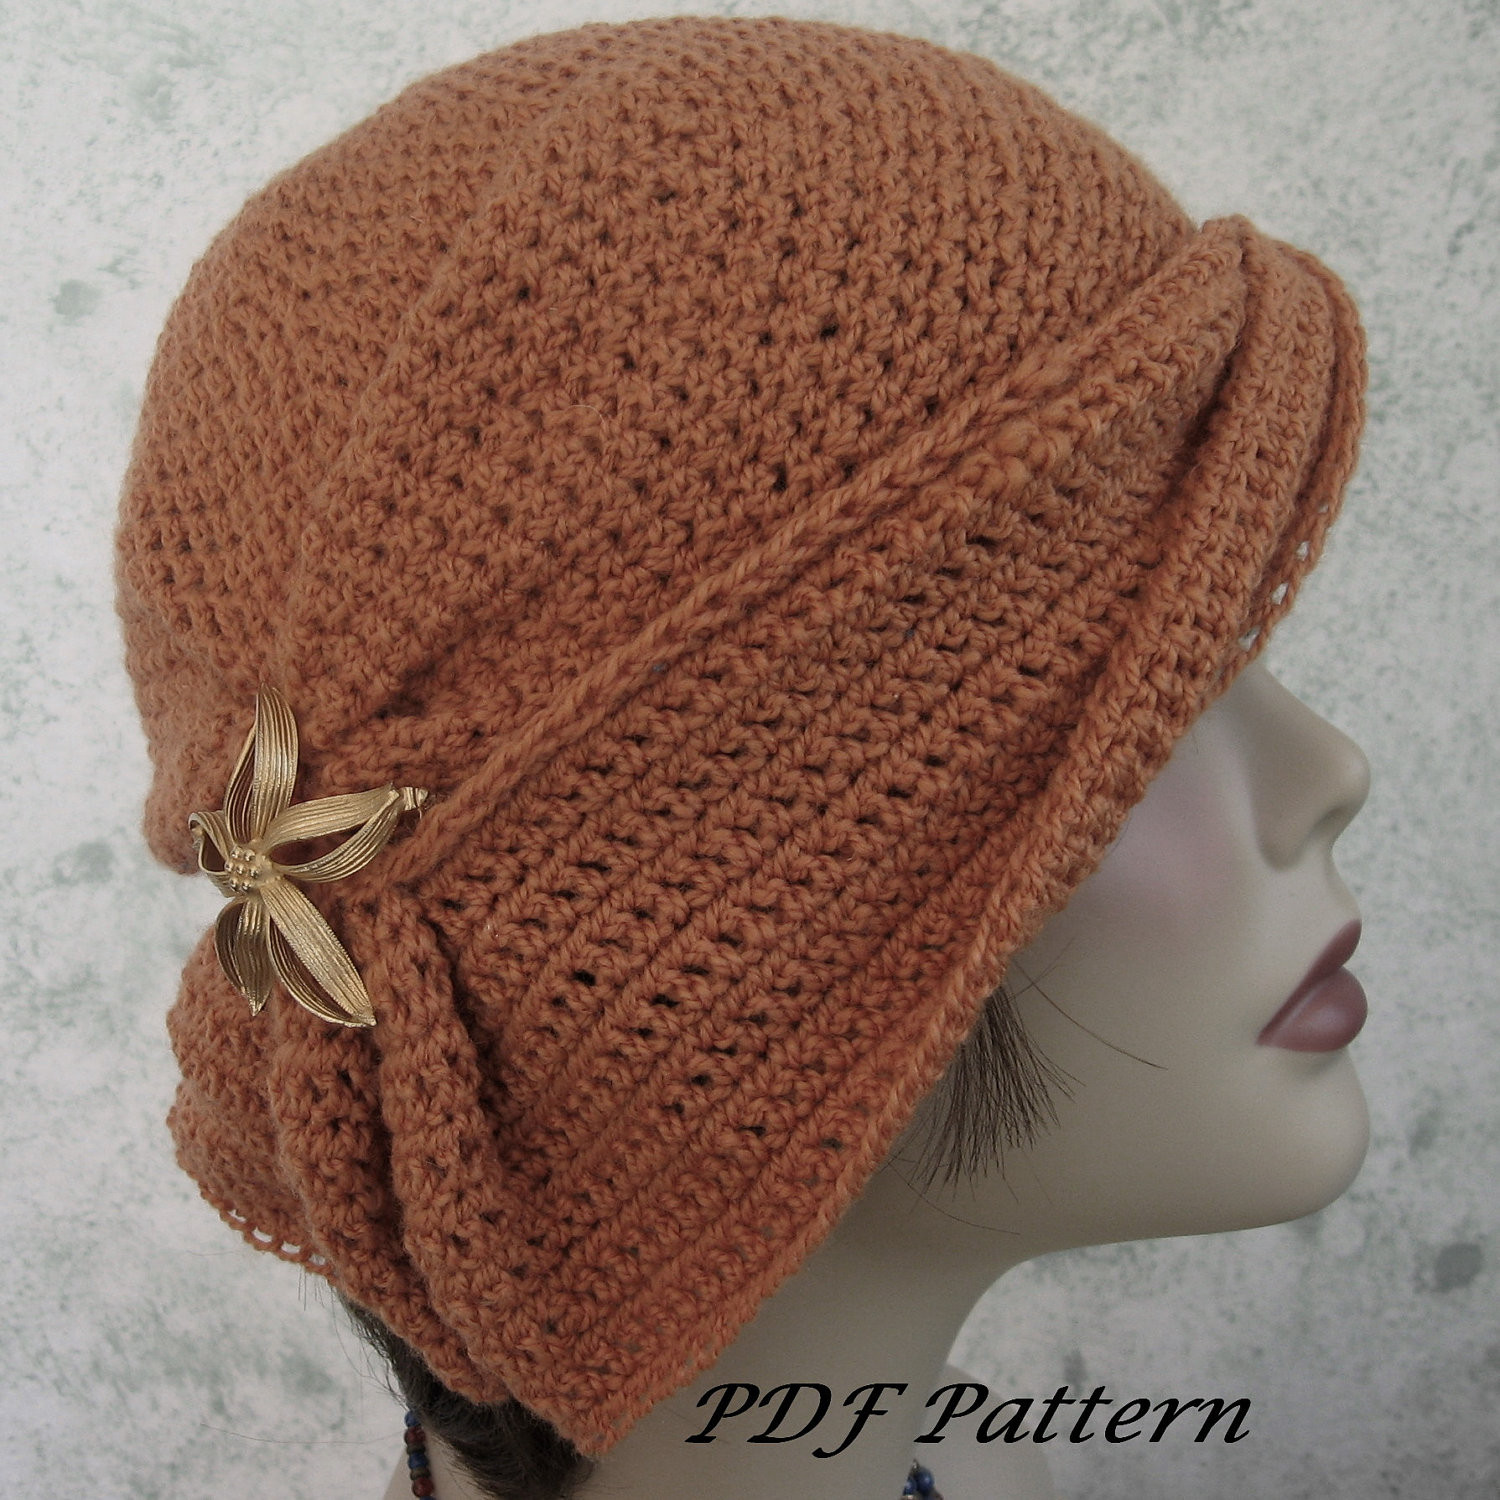 Crochet or Knit Best Of Free Crochet Hat Patterns You Have Been Looking for Of Superb 42 Pics Crochet or Knit